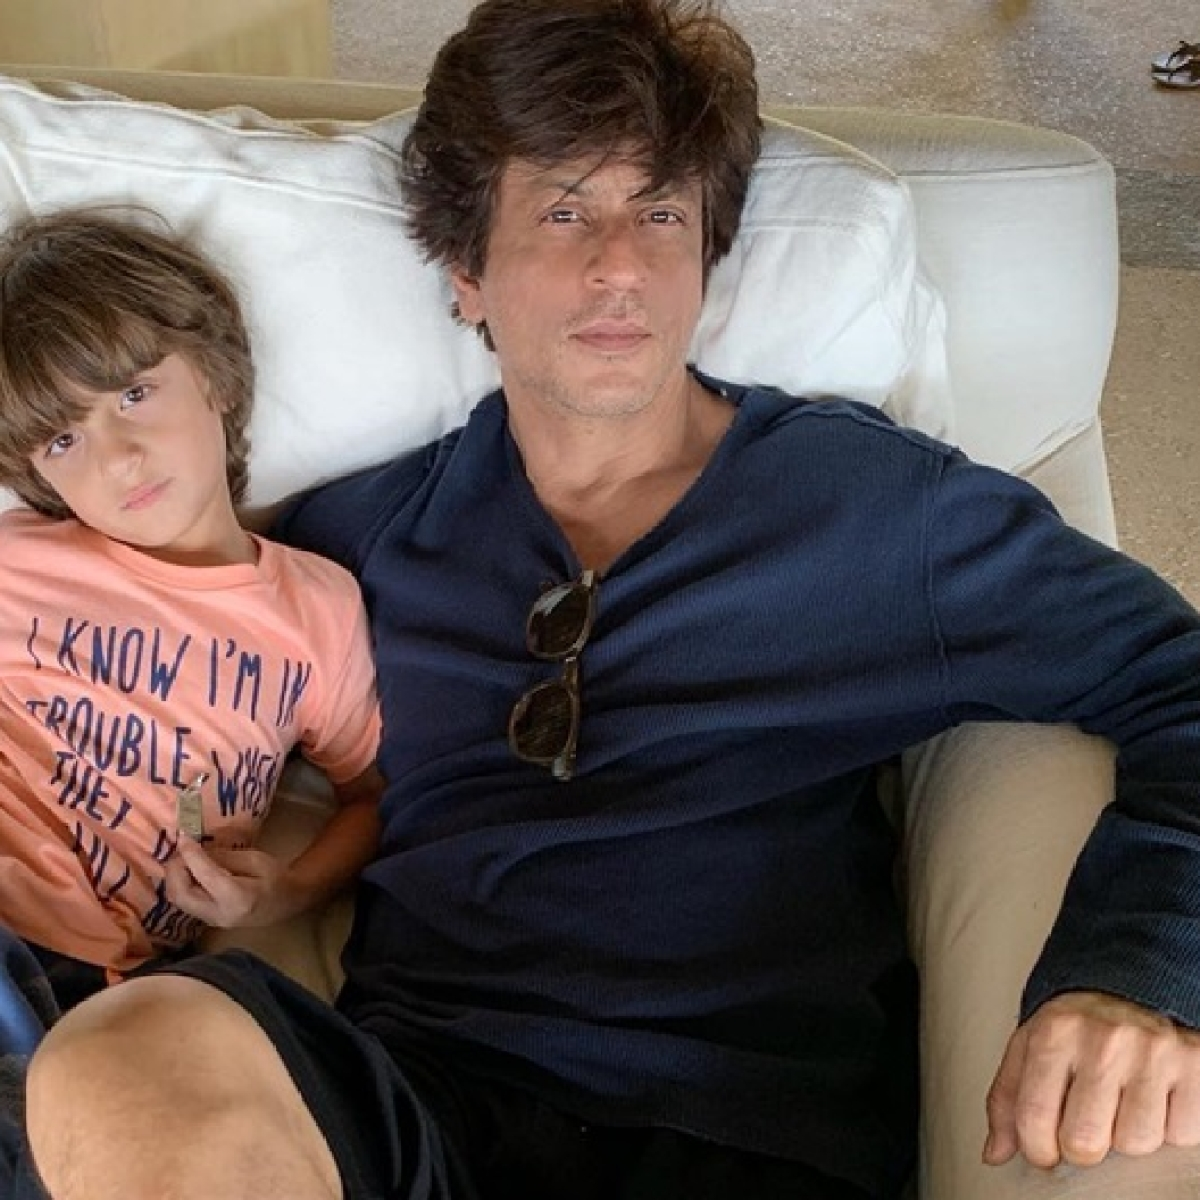 Papa it's not new, it's just you: AbRam's epic reaction to Shah Rukh Khan's appearance on Letterman